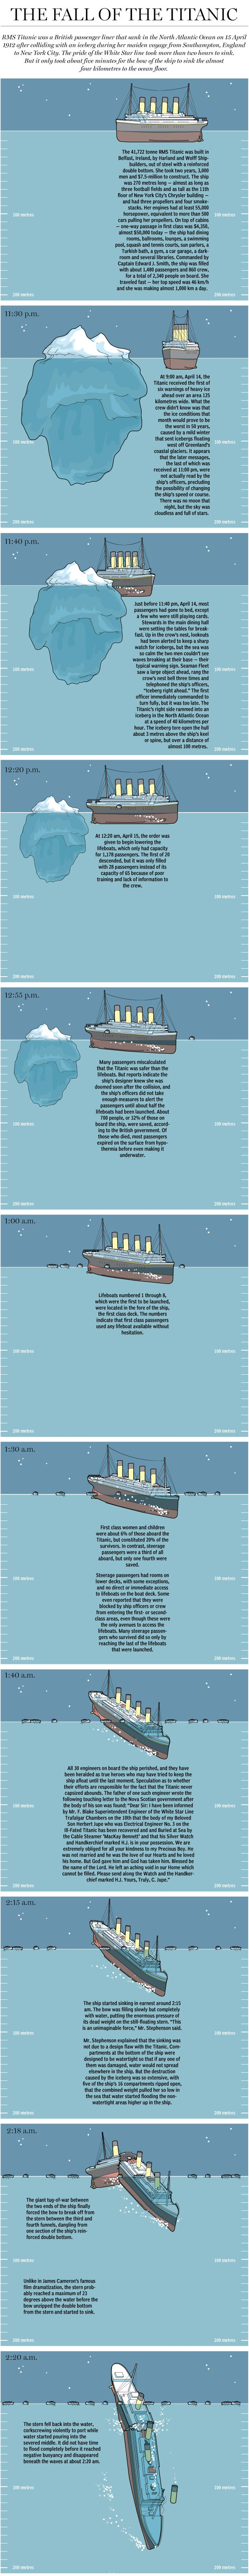 Titanic anniversary: Follow the ship down to the bottom of the ocean | Graphics | News | National Post